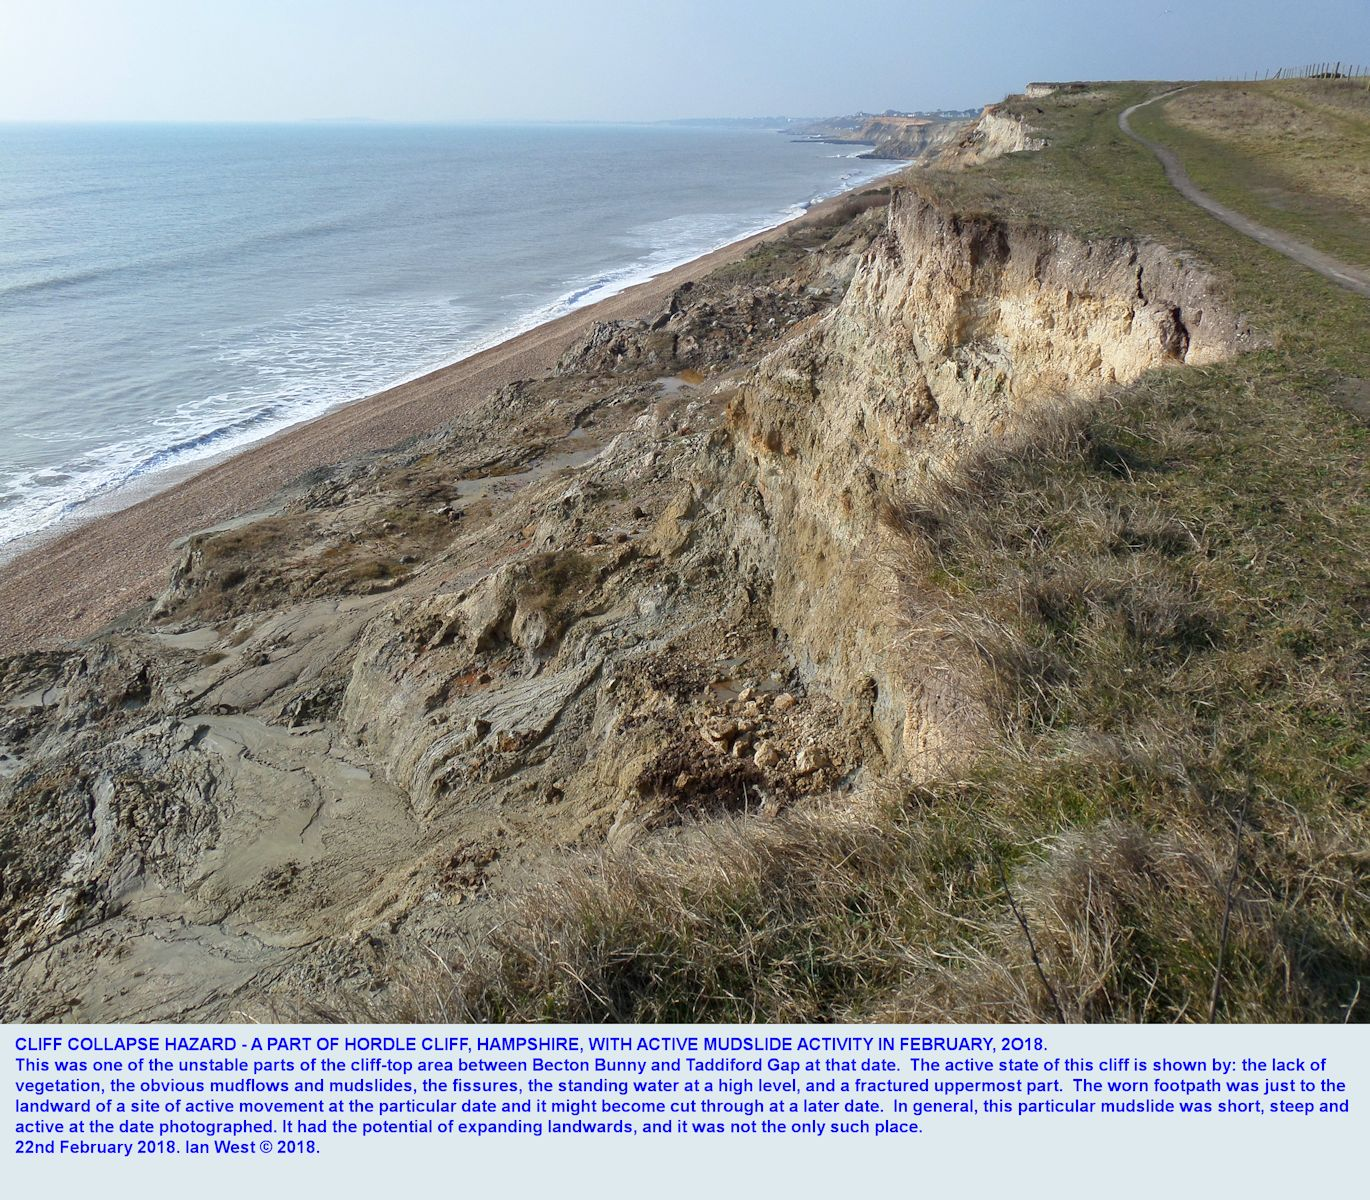 Upper part of a landslide and mudslide developing just west of Taddiford Gap, Hordle Cliff, Hampshire, and likely to extend further landward and perhaps cut the cliff-top footpath, as seen on 22nd February, 2018